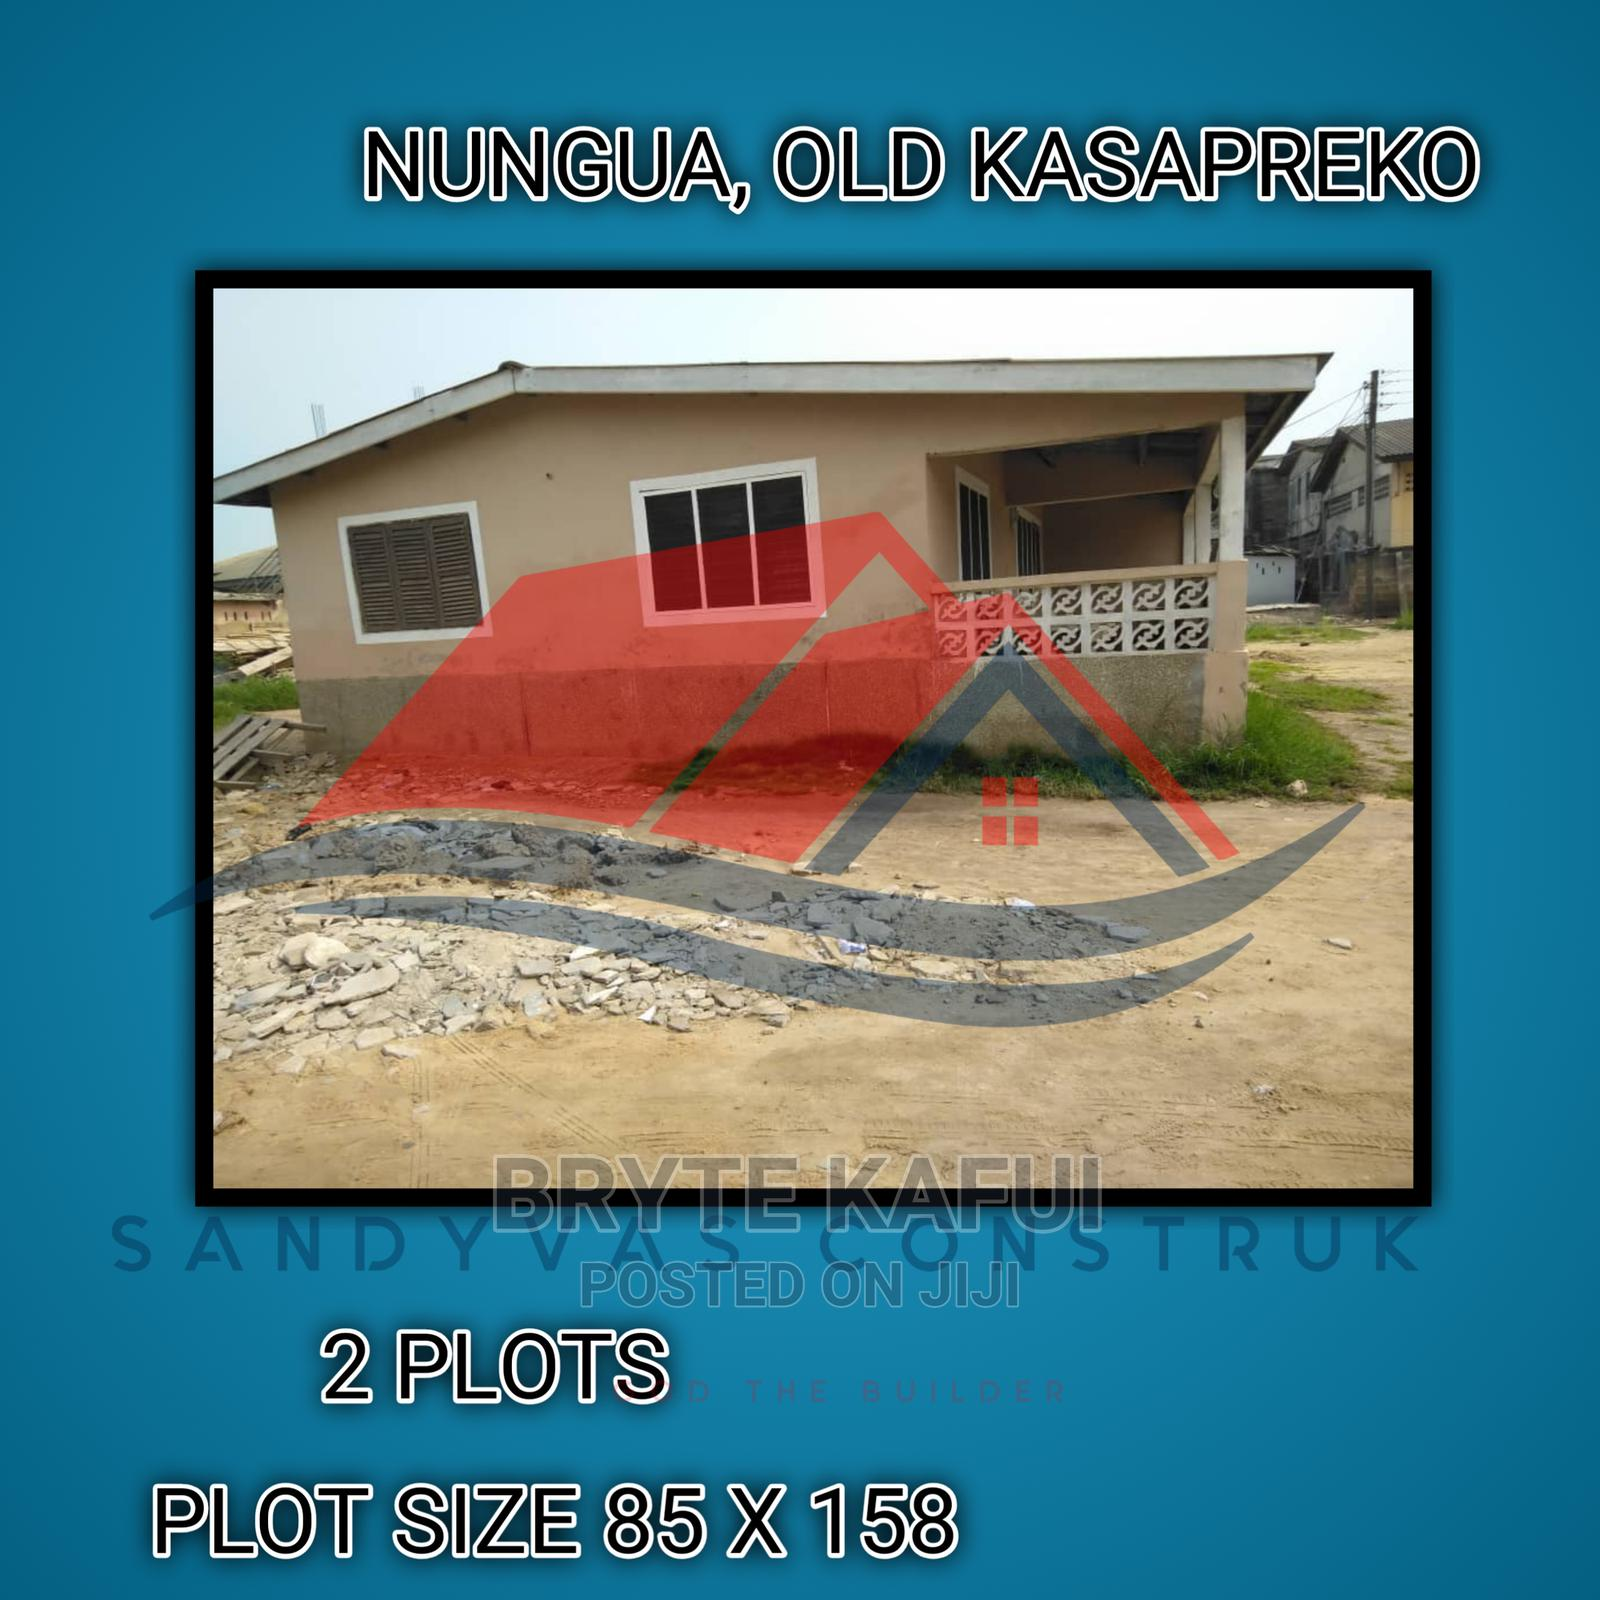 Archive: A Nice House Sitting On Two Plots Of La Land Is Up For Sale!